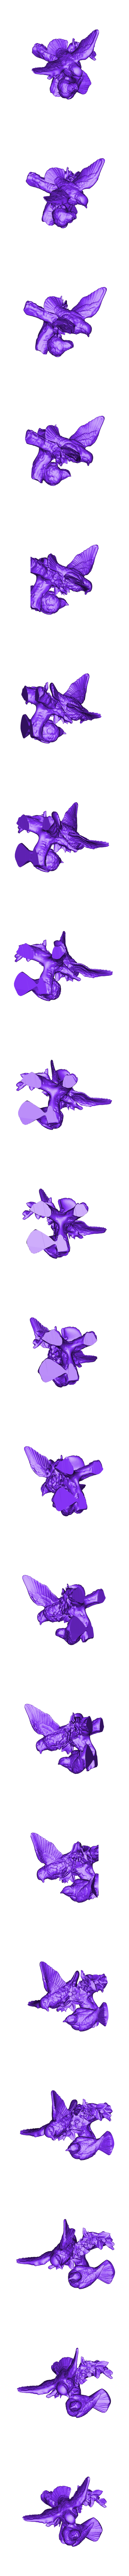 Two_birds_on_a_branch.stl Download free STL file Two Birds on a Branch • 3D print template, itech3dp